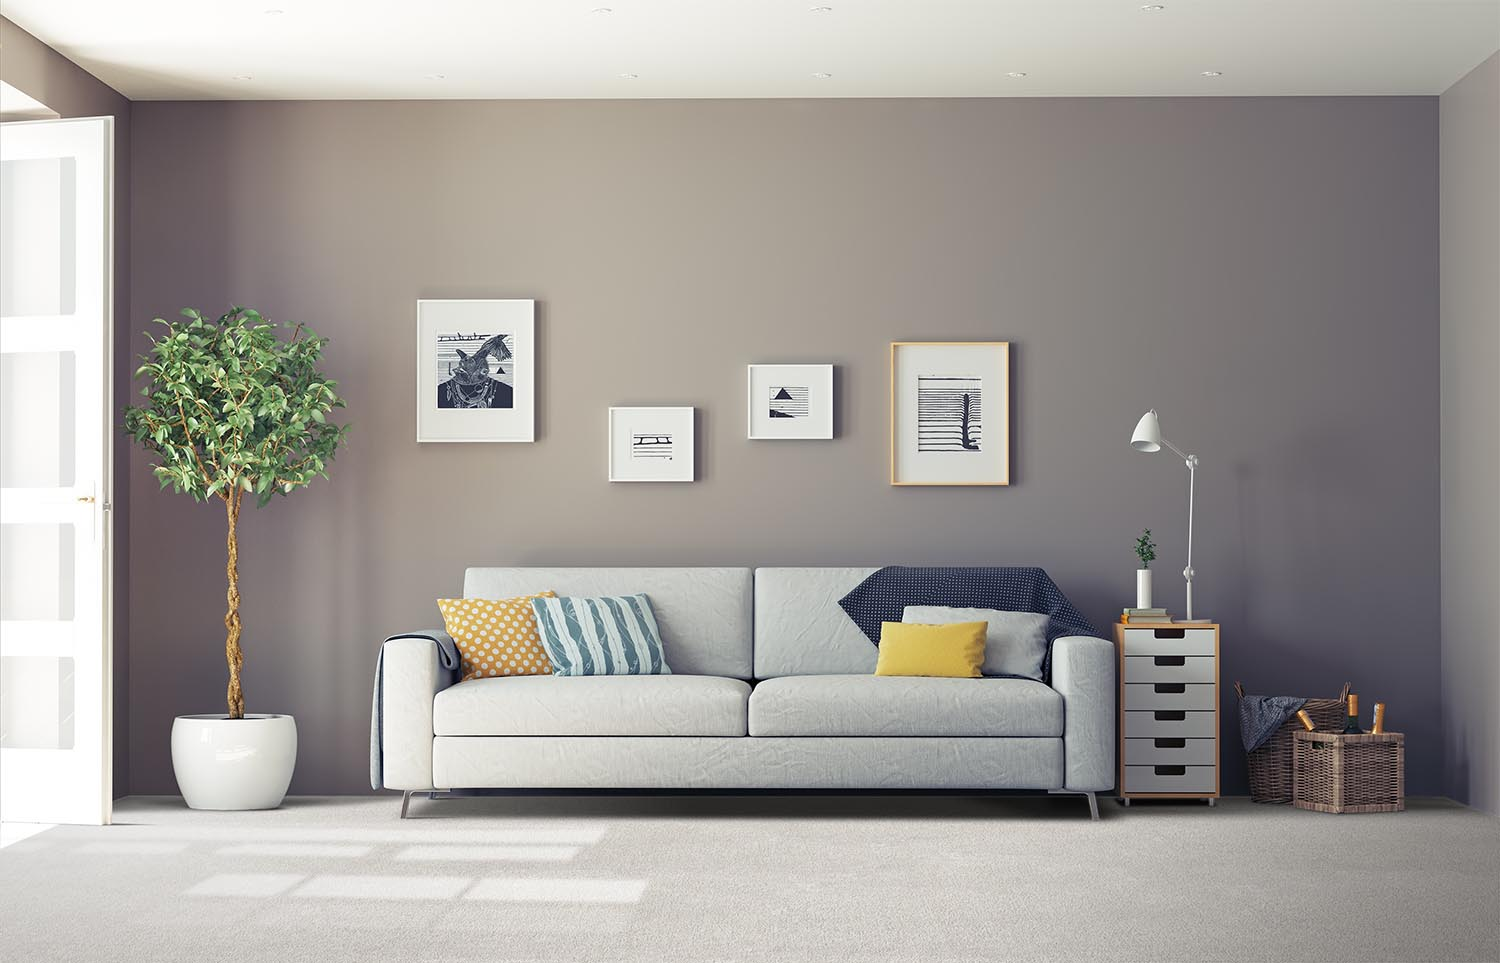 Softology - S201 - Plume classic living room